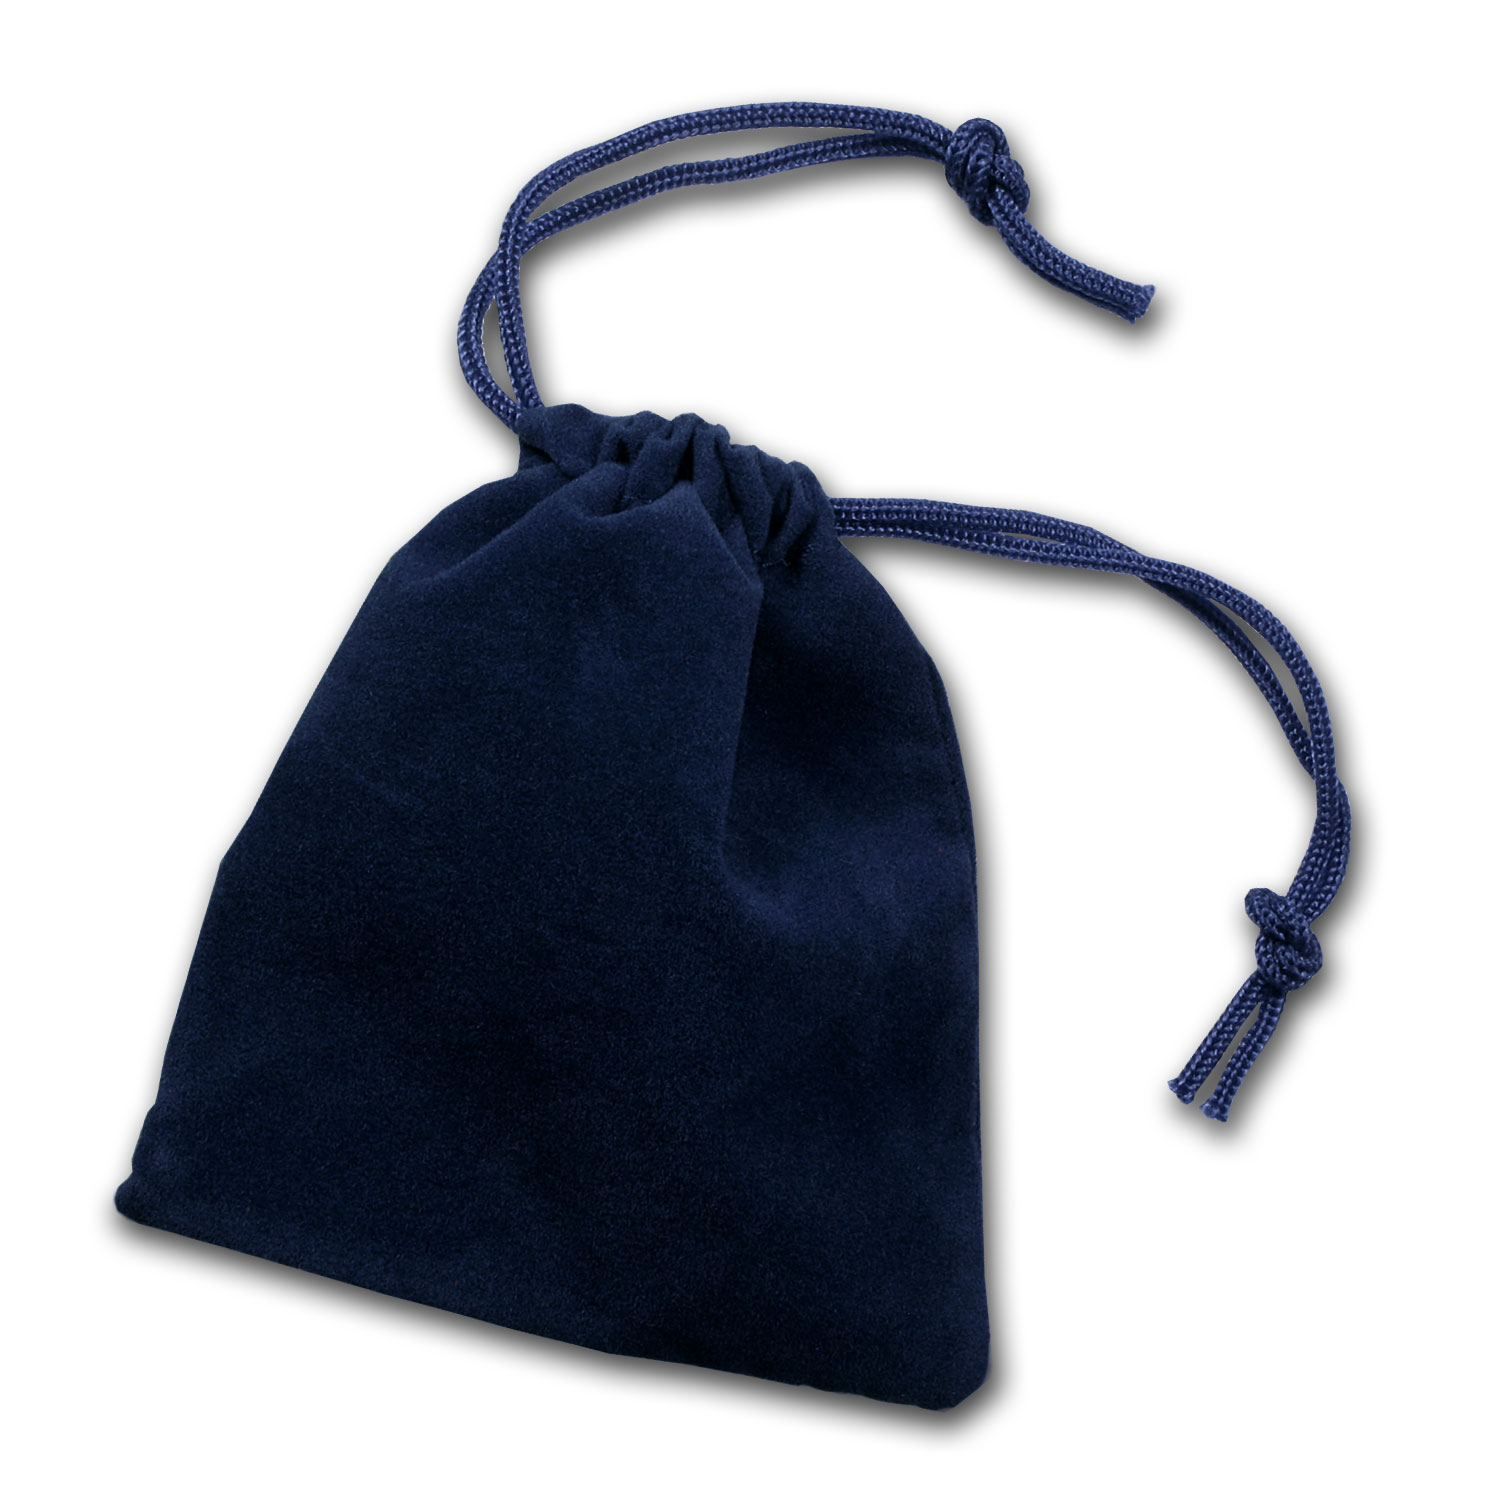 3 x 4 Velour Draw String Pouch (Navy Blue)